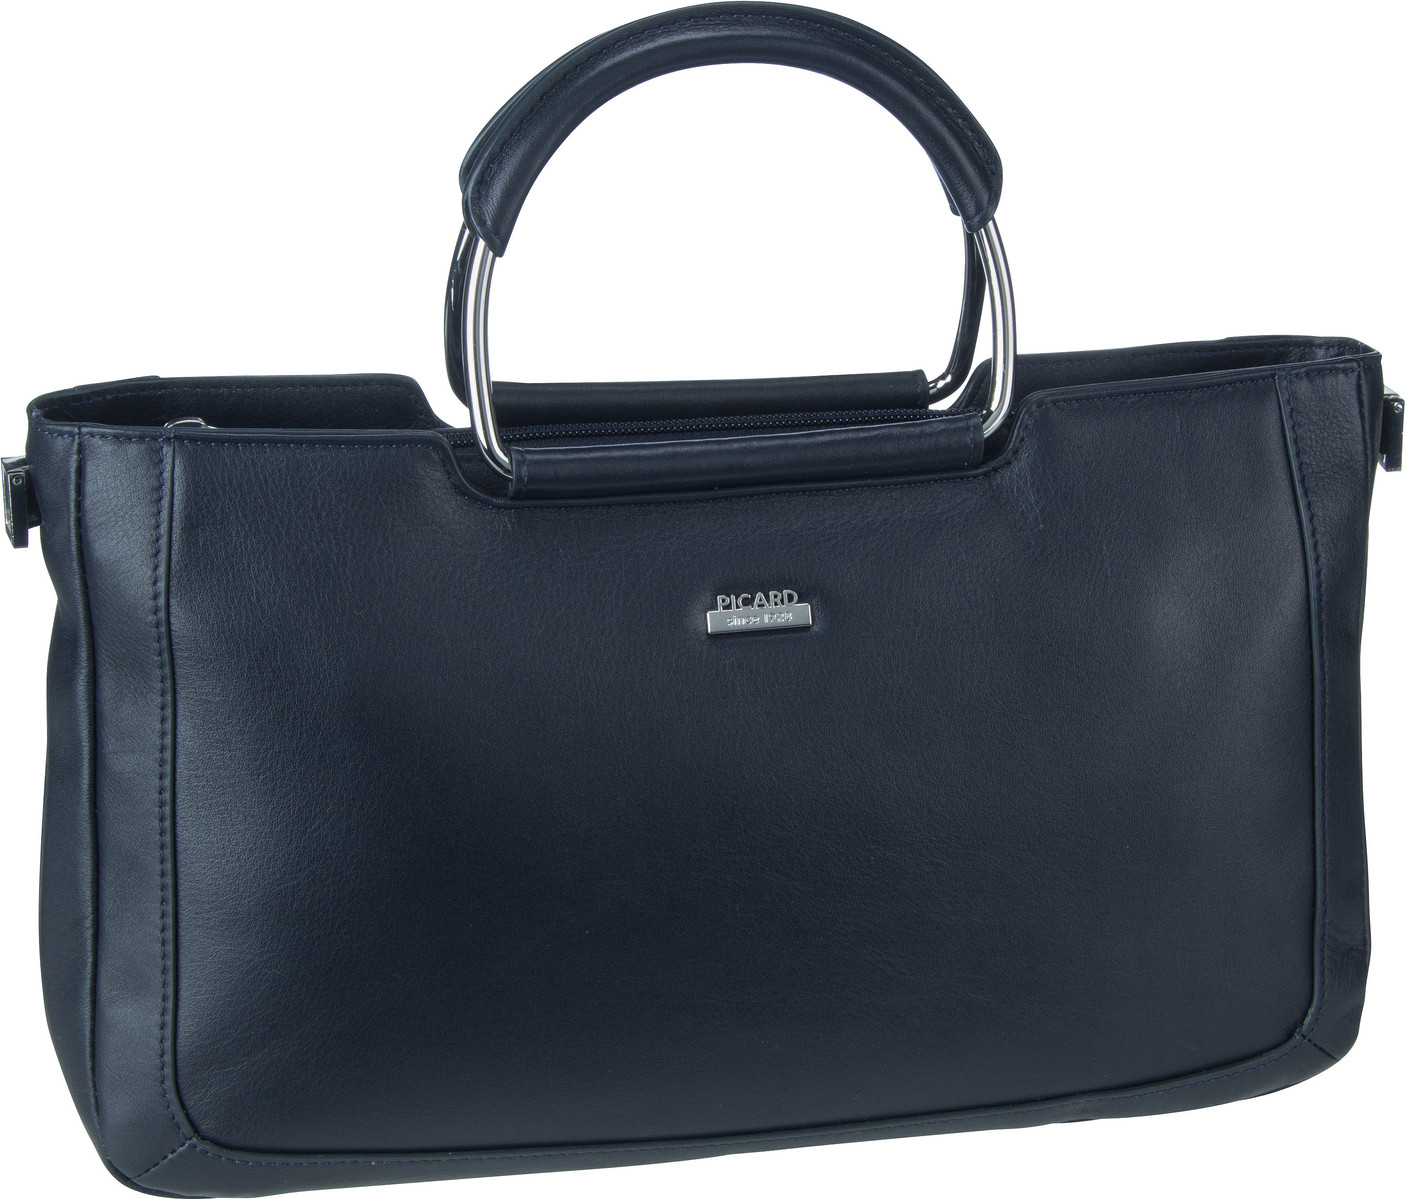 Handtasche Really 9660 Ozean